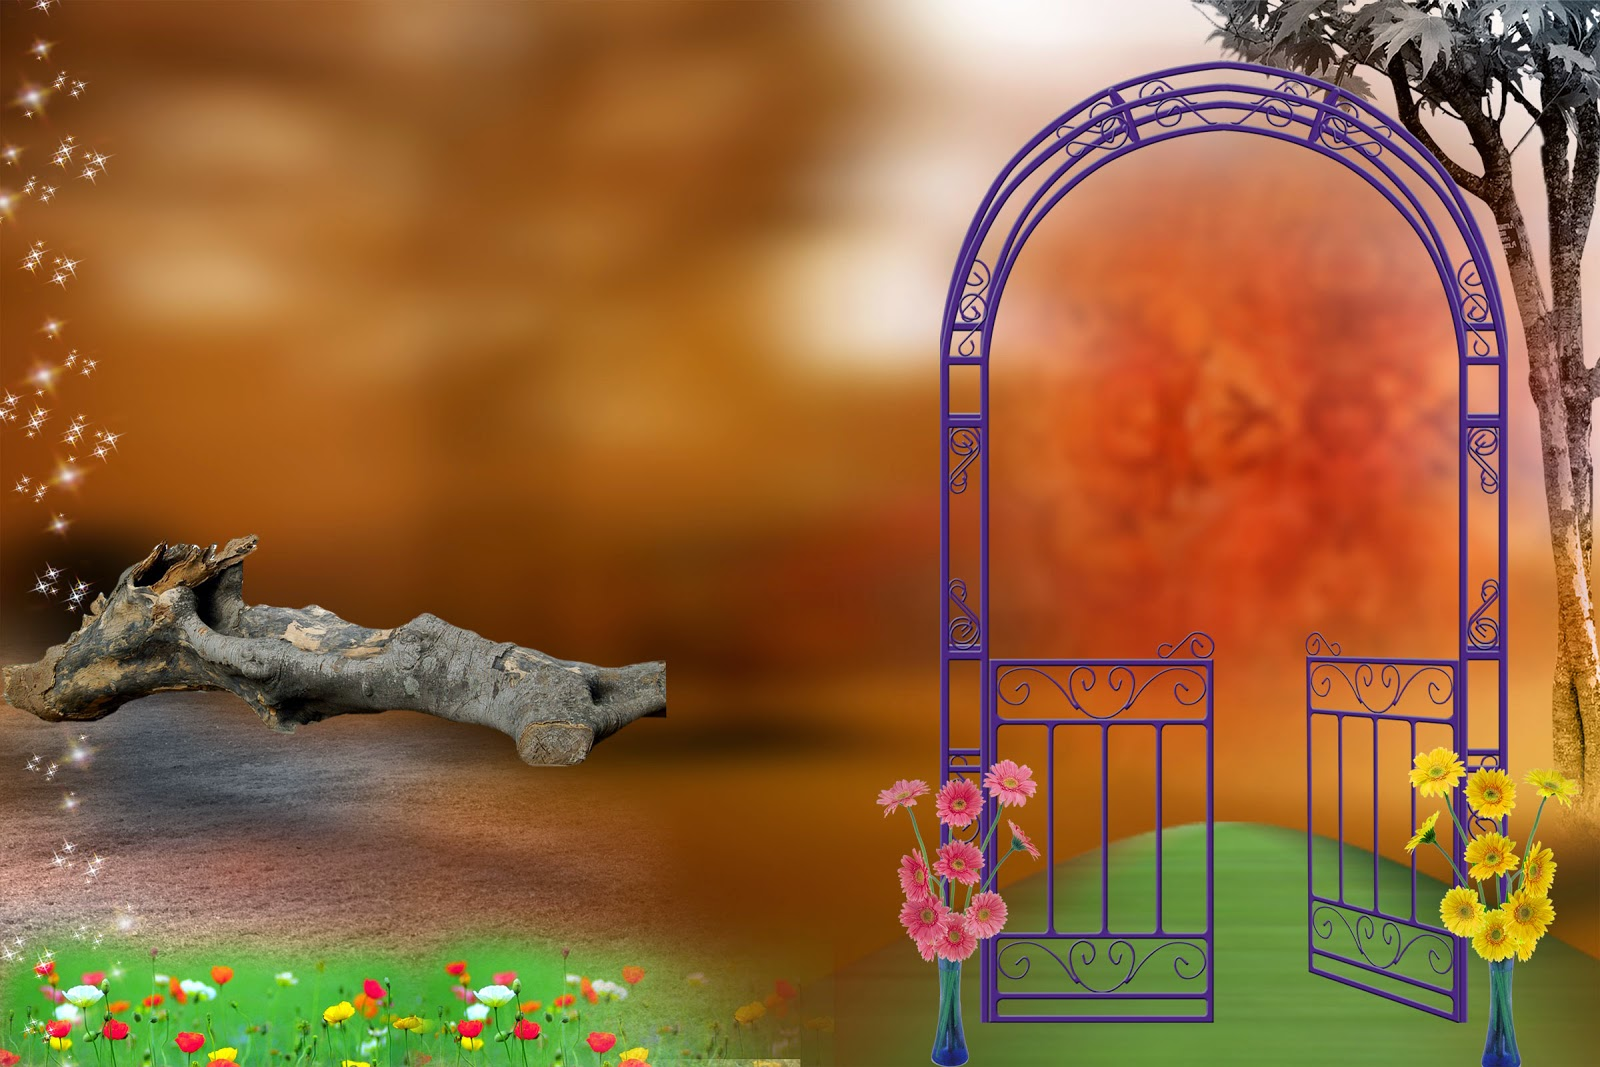 ... Album Background Design Psd - All Photoshop Psd Files Available